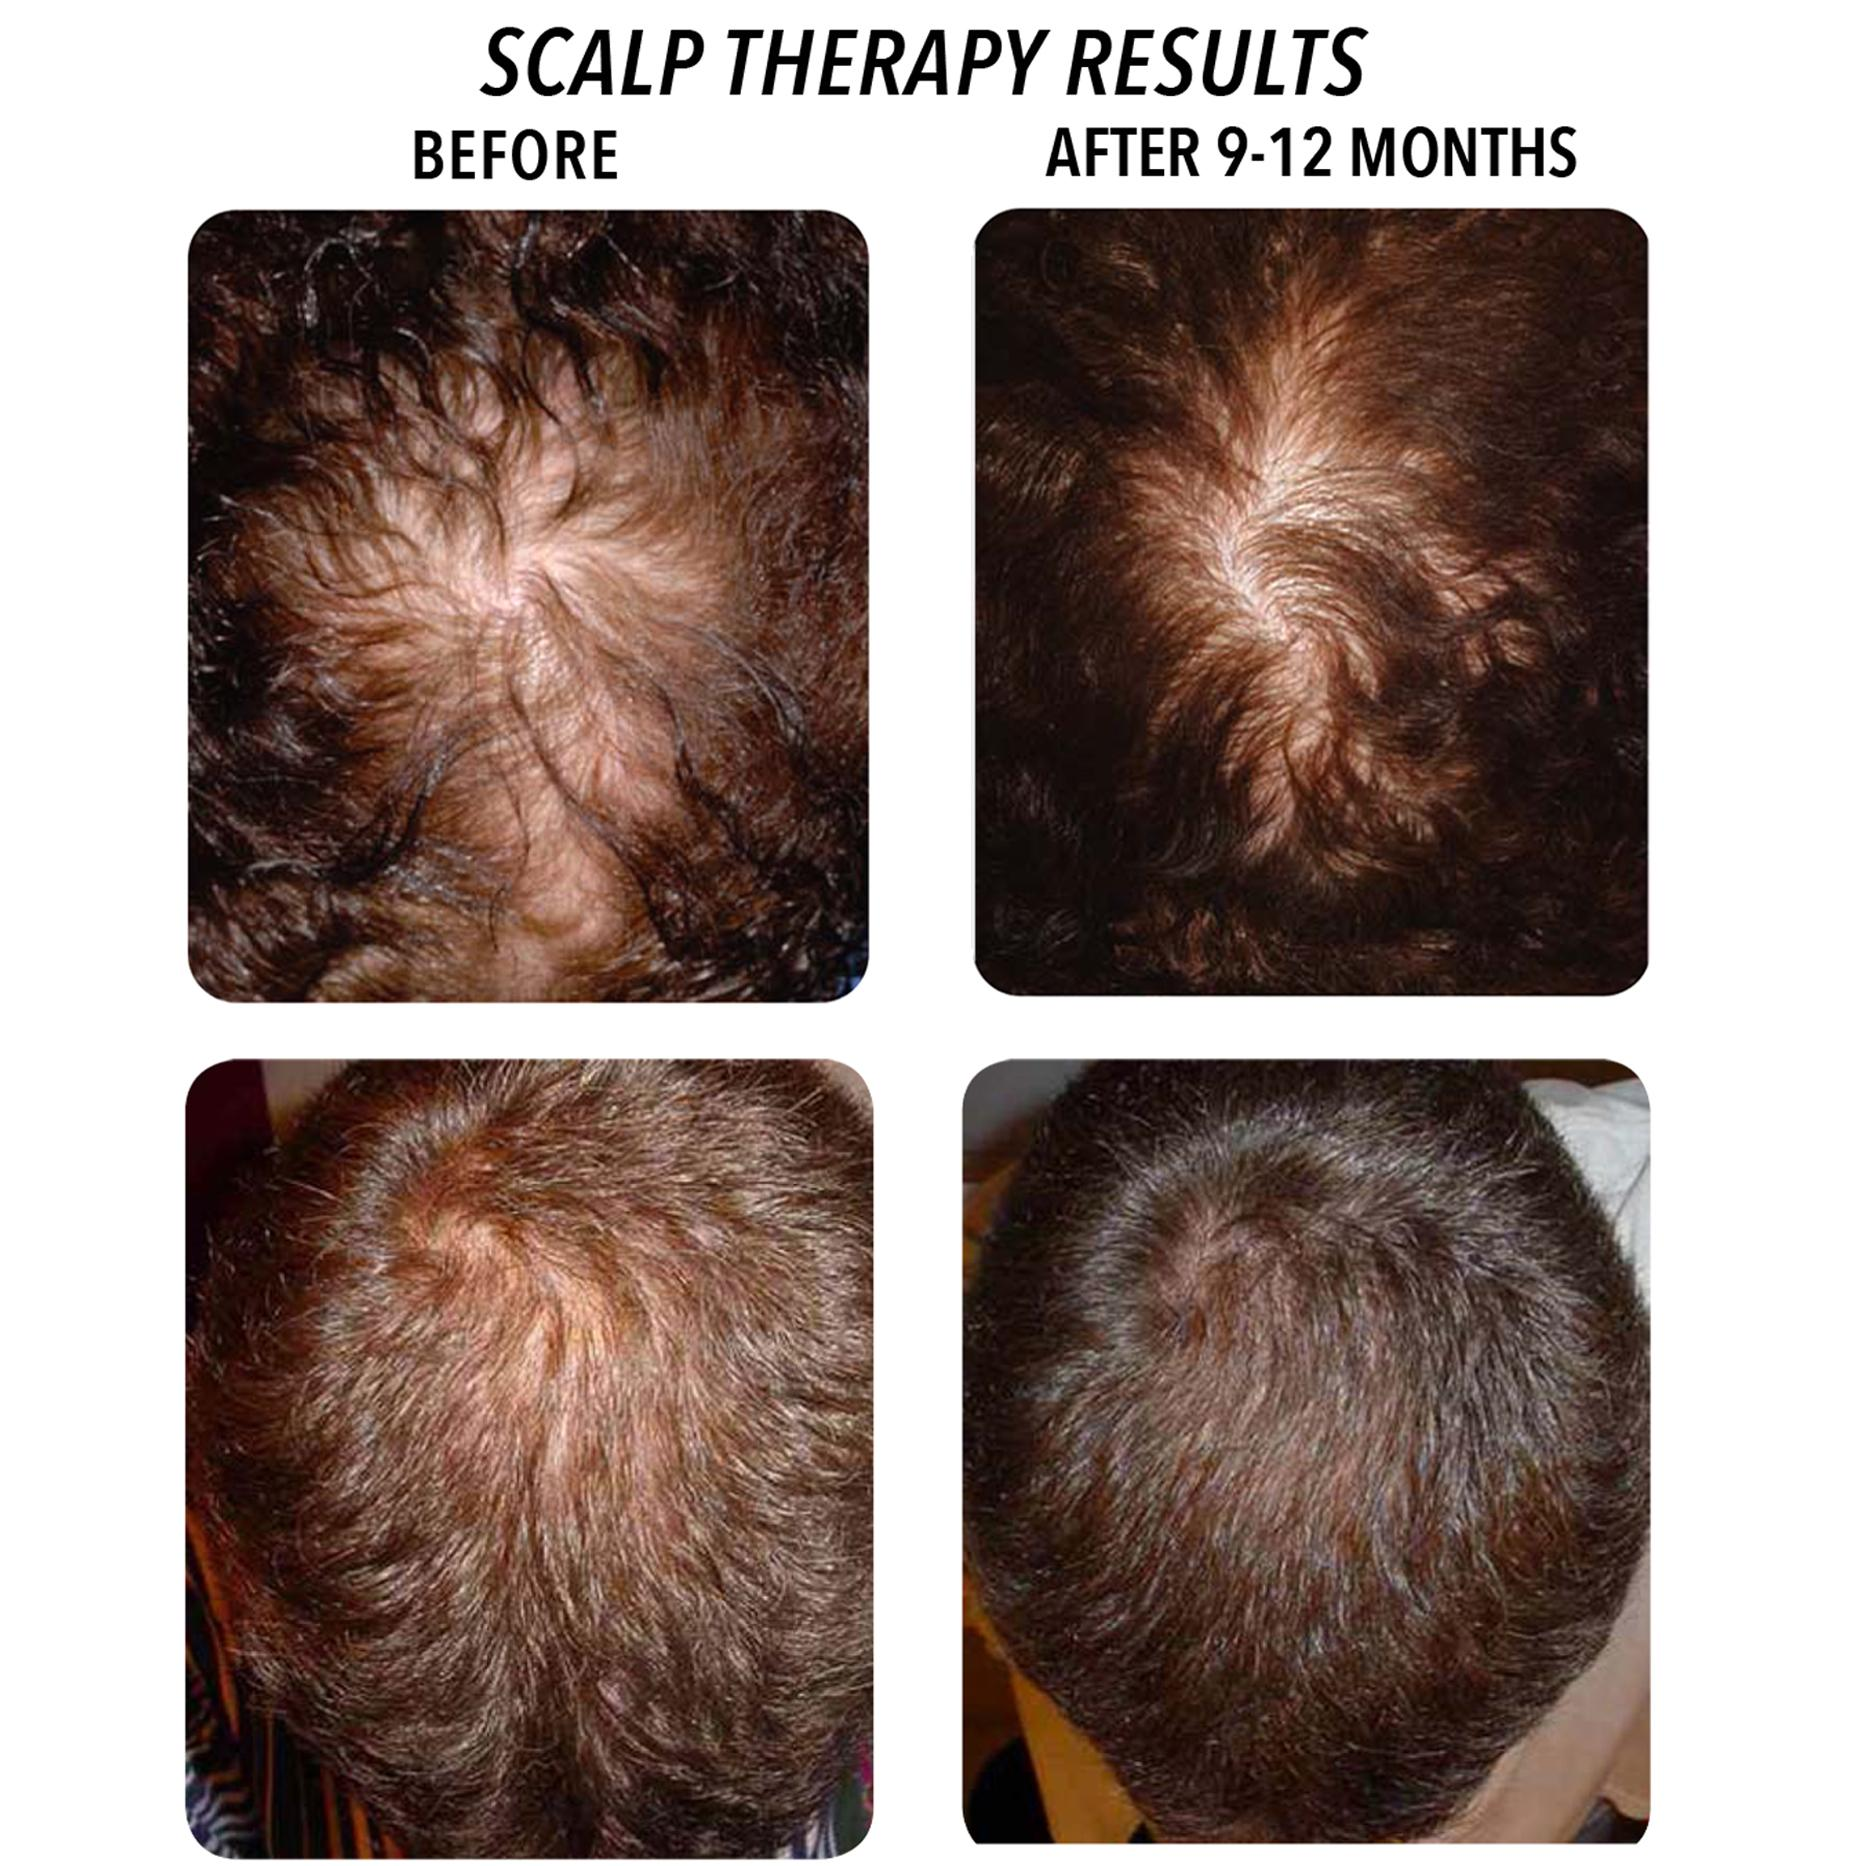 Daily Scalp Massage Hair Growth Results Natural Hair